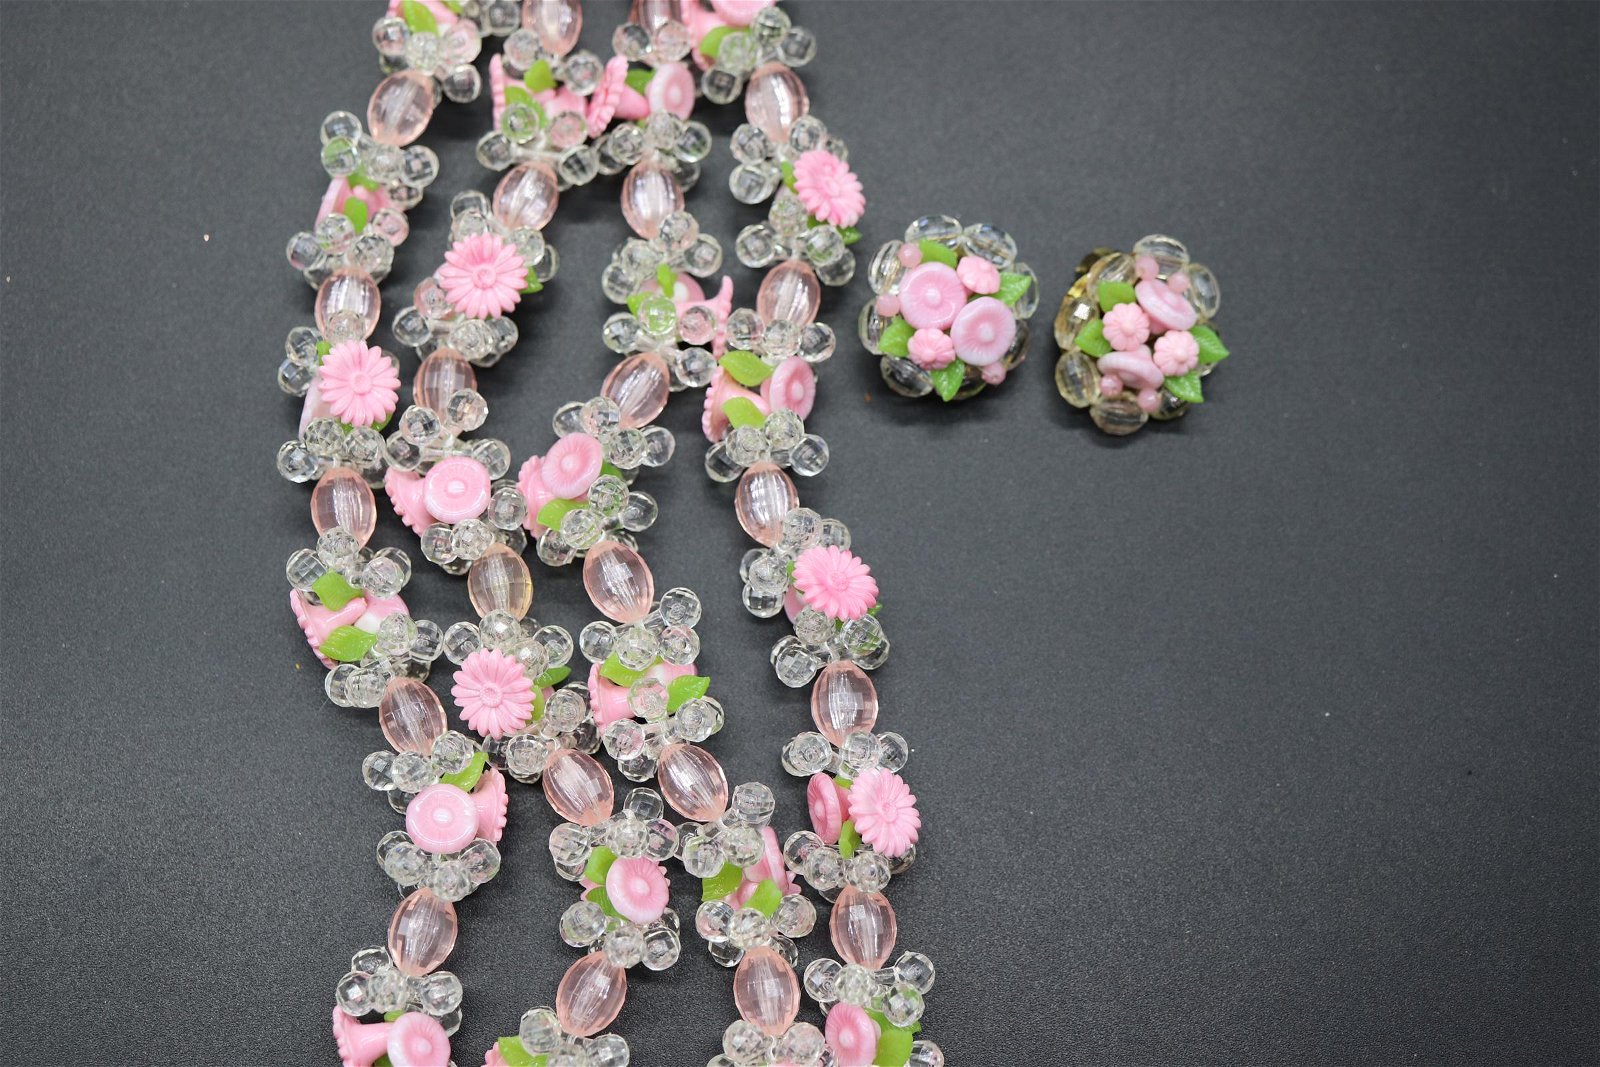 Vintage 1950/60's Plastic Floral Necklace Set, M. West